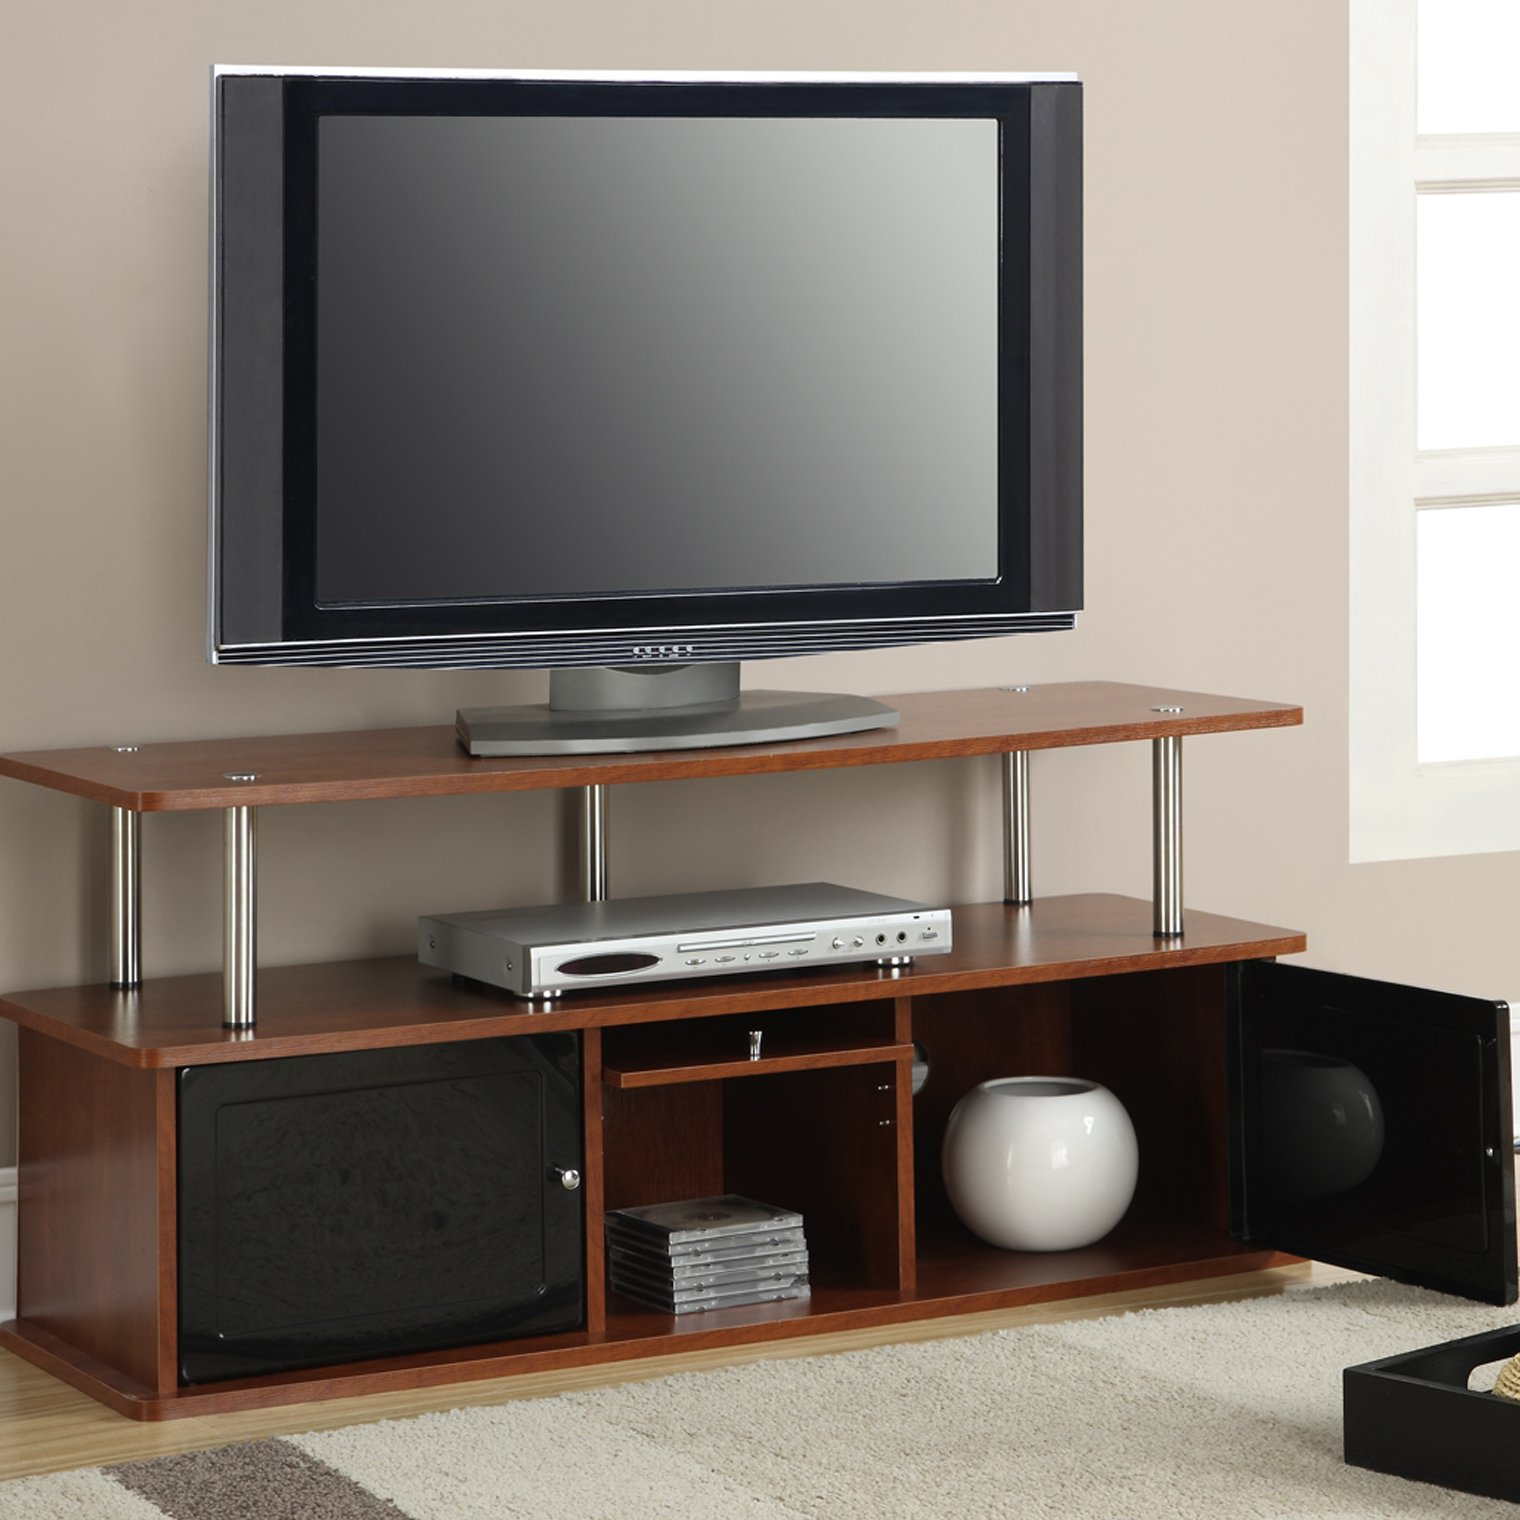 Home Loft Concepts Tv Stand – Wonderful Interior Design For Home • Within Favorite Home Loft Concept Tv Stands (View 14 of 20)